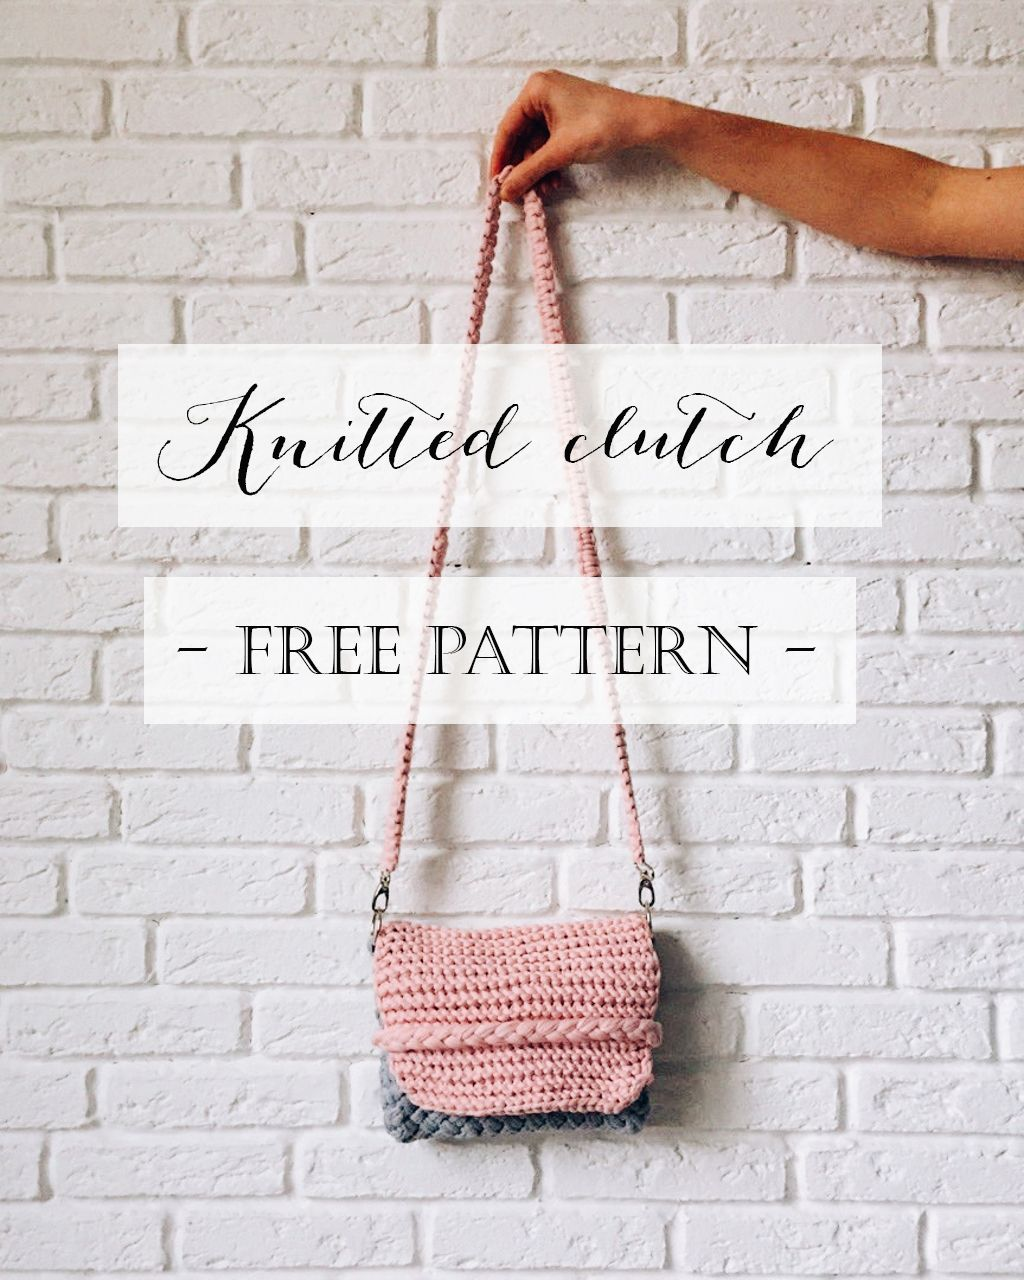 Try this free pattern to make your own knitted clutch diy try this free pattern to make your own knitted clutch bankloansurffo Image collections